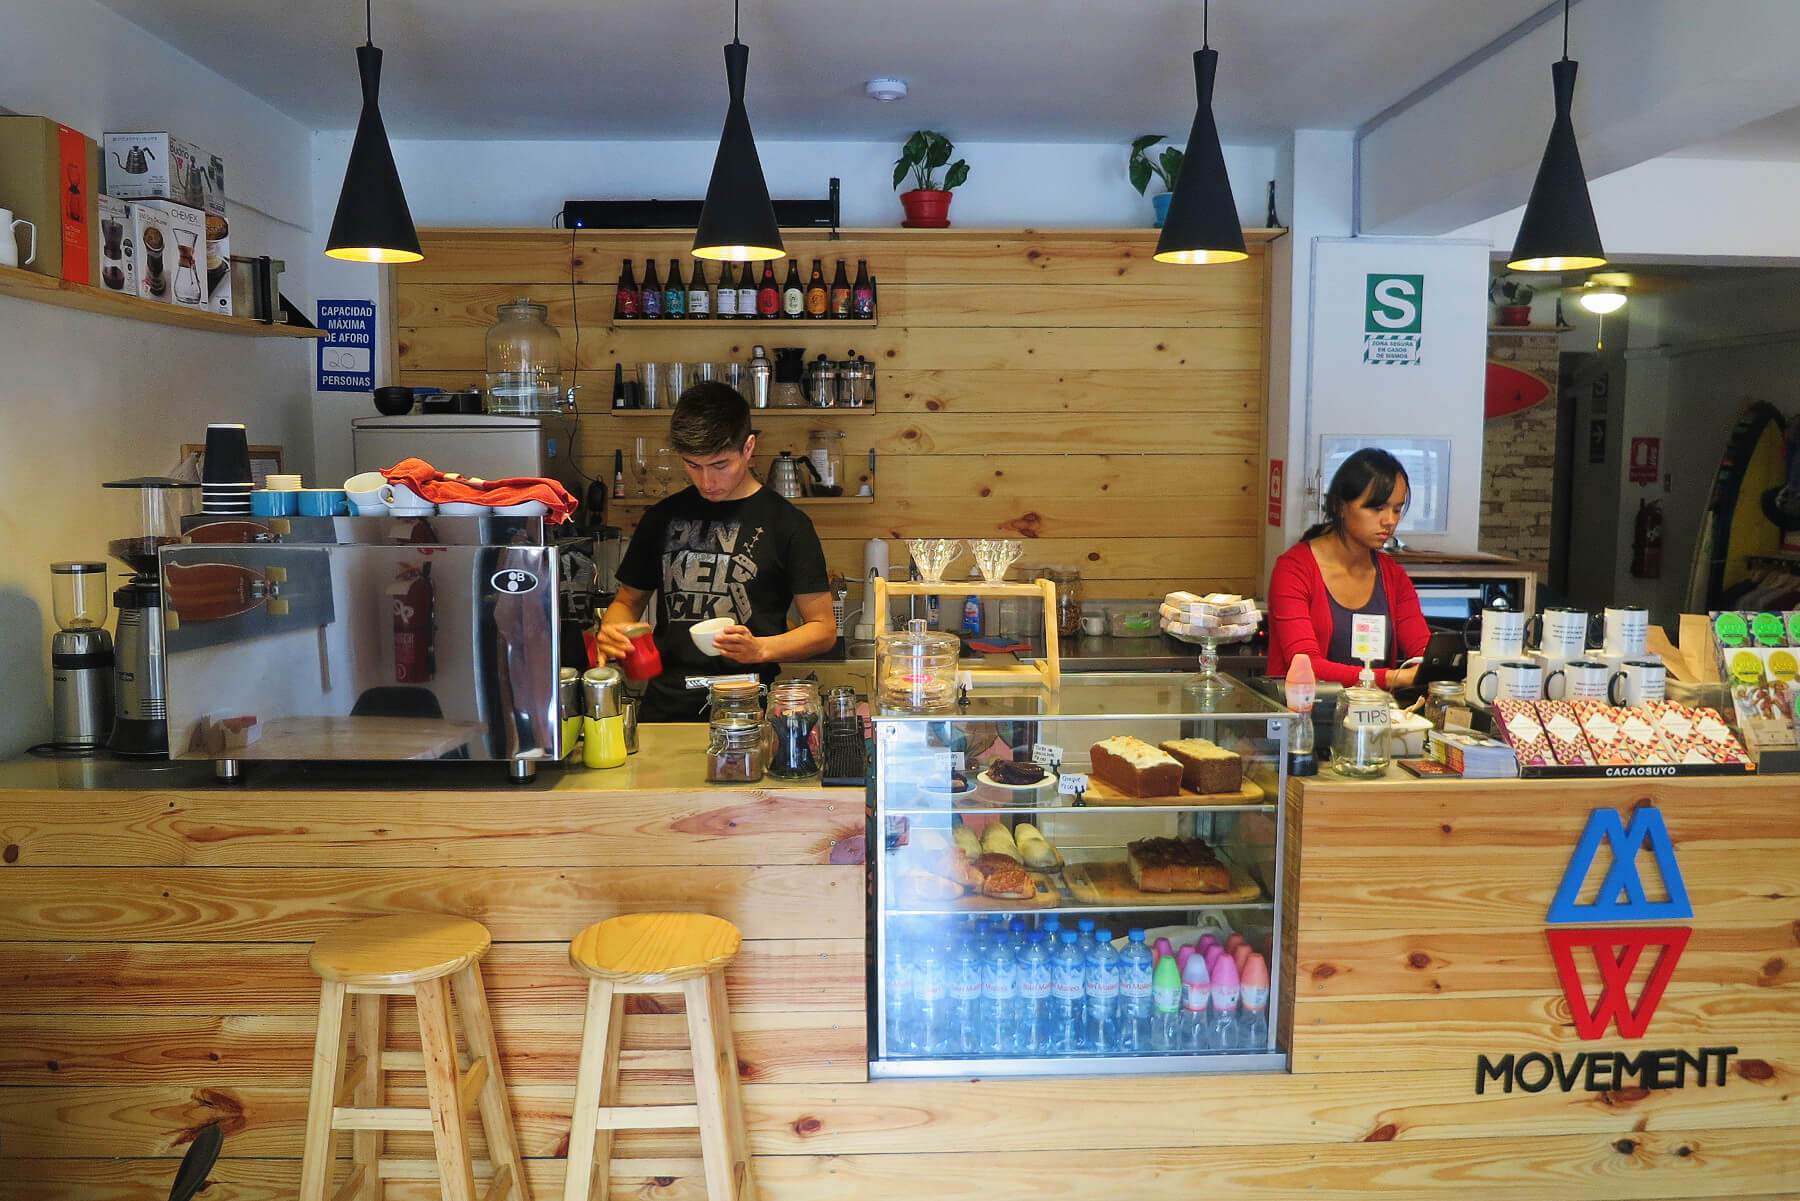 Movement + Surf Cafe is a laid back surf-themed third wave coffee shop in the Miraflores neighborhood of Lima, Peru.